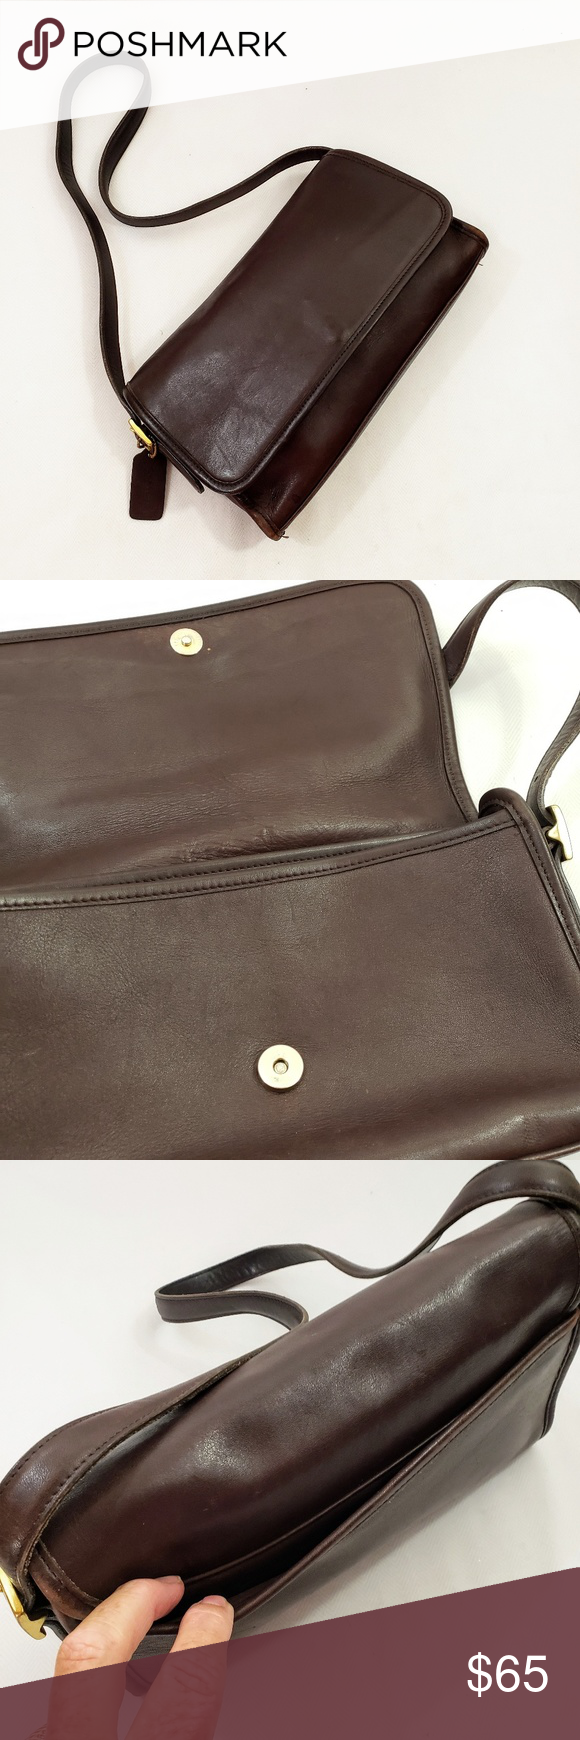 Coach #9072 Andrea Foldover Flap Bag Brown Coach #9072 Andrea Foldover Flap Bag - This is a Coach circa 1980's Classic - Brown Leather - Very Good Condition w minimal wear (see close up photos) -  Approx 8